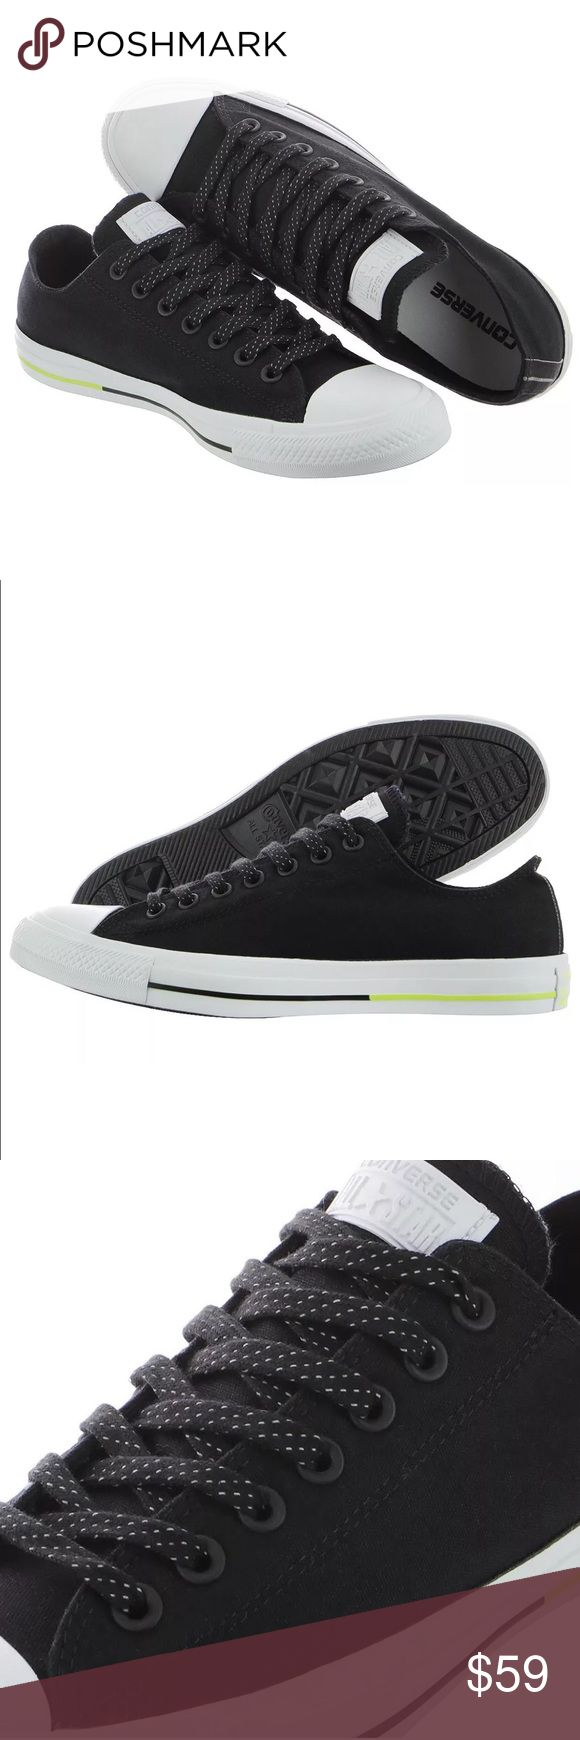 Converse OX Black White Volt Counter Climate NEW Converse CTAS OX Black White Volt Women's 10.5 Counter Climate NEW 153798F. Counter climate fabric technology keeps shoes and feet dry. Brand new, never worn shoes with original box as pictured. Converse Shoes Sneakers